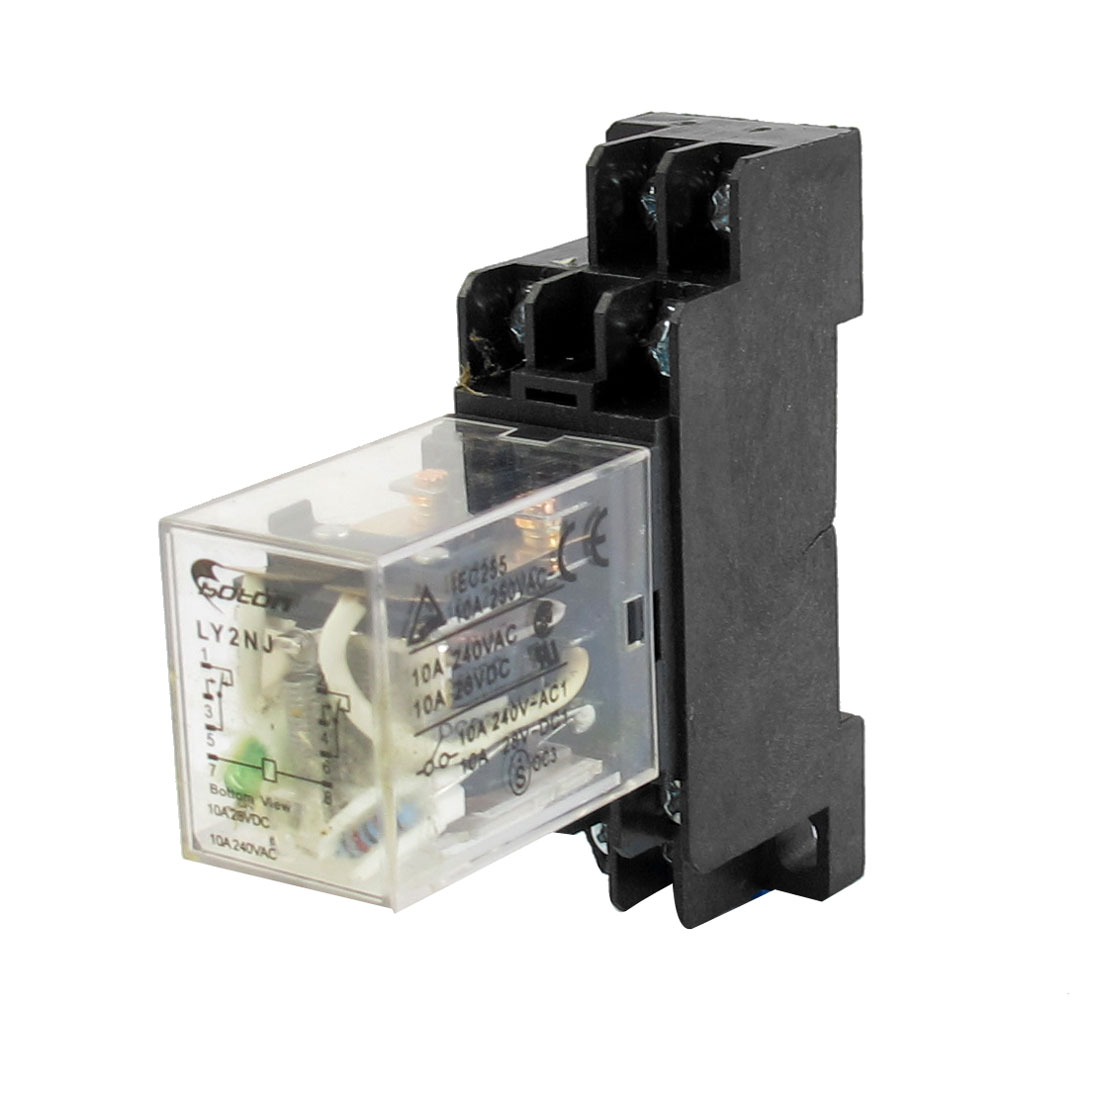 DC 24V 35mm DIN Rail Mounting 8-Pin DPDT 2NO 2NC General Purpose Electromagnetic Coil Power Relay w Plug-in Socket